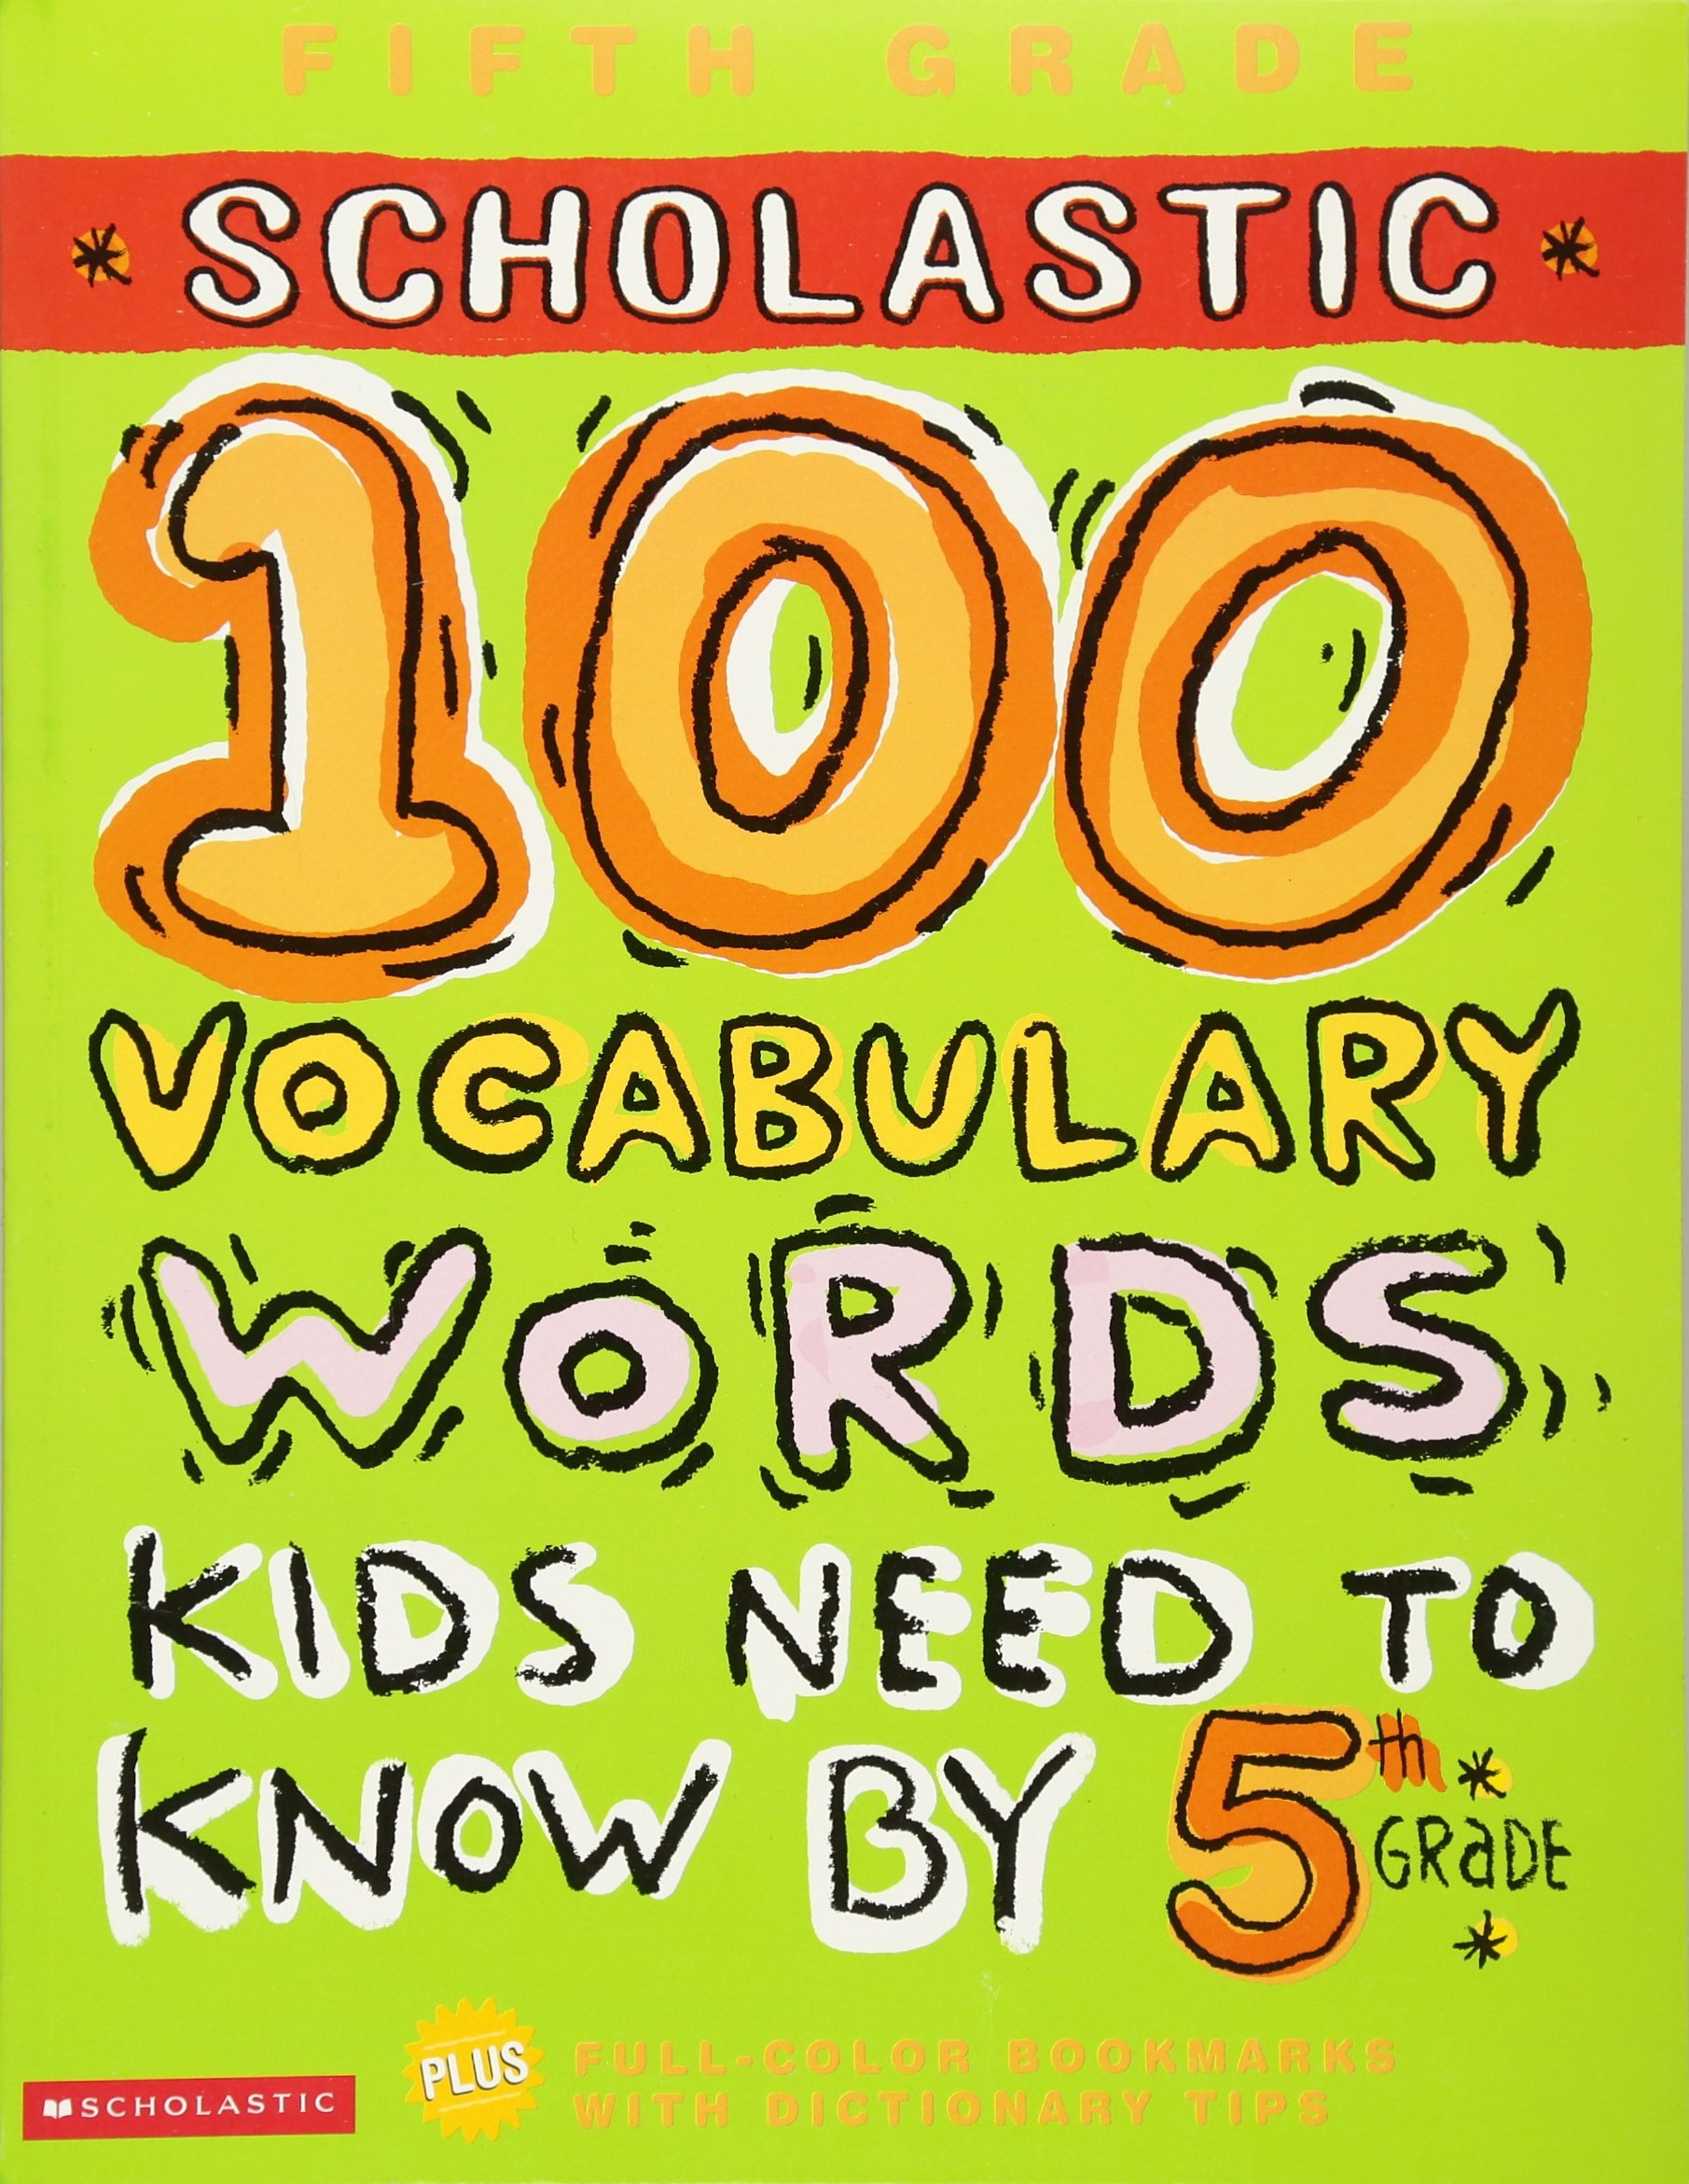 100 Vocabulary Words Kids Need to Know by 5th Grade (100 Words Workbook) by Scholastic (Image #1)